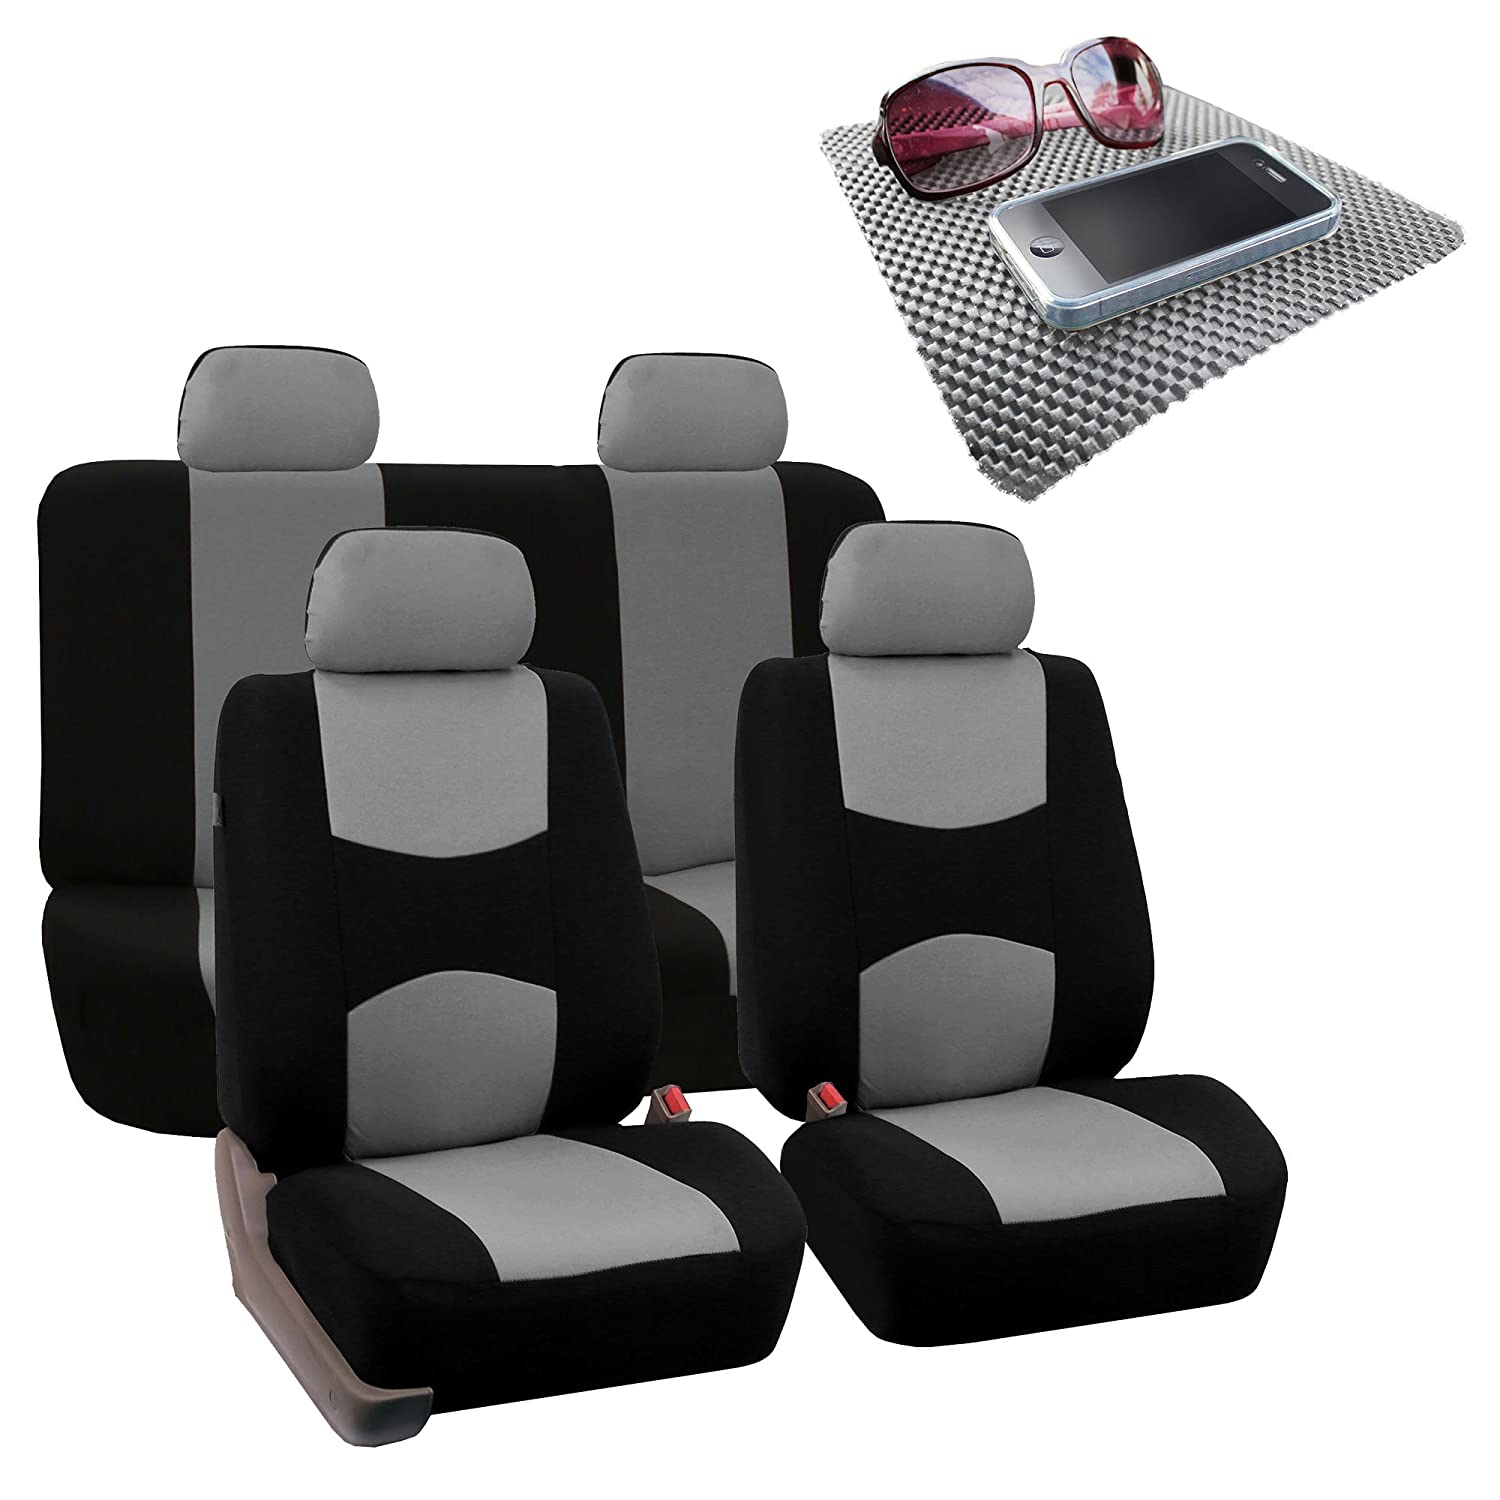 Burgundy//Black- Fit Most Car or Van FH Group Bright Flat Cloth Full Set Car Seat Covers Suv Truck